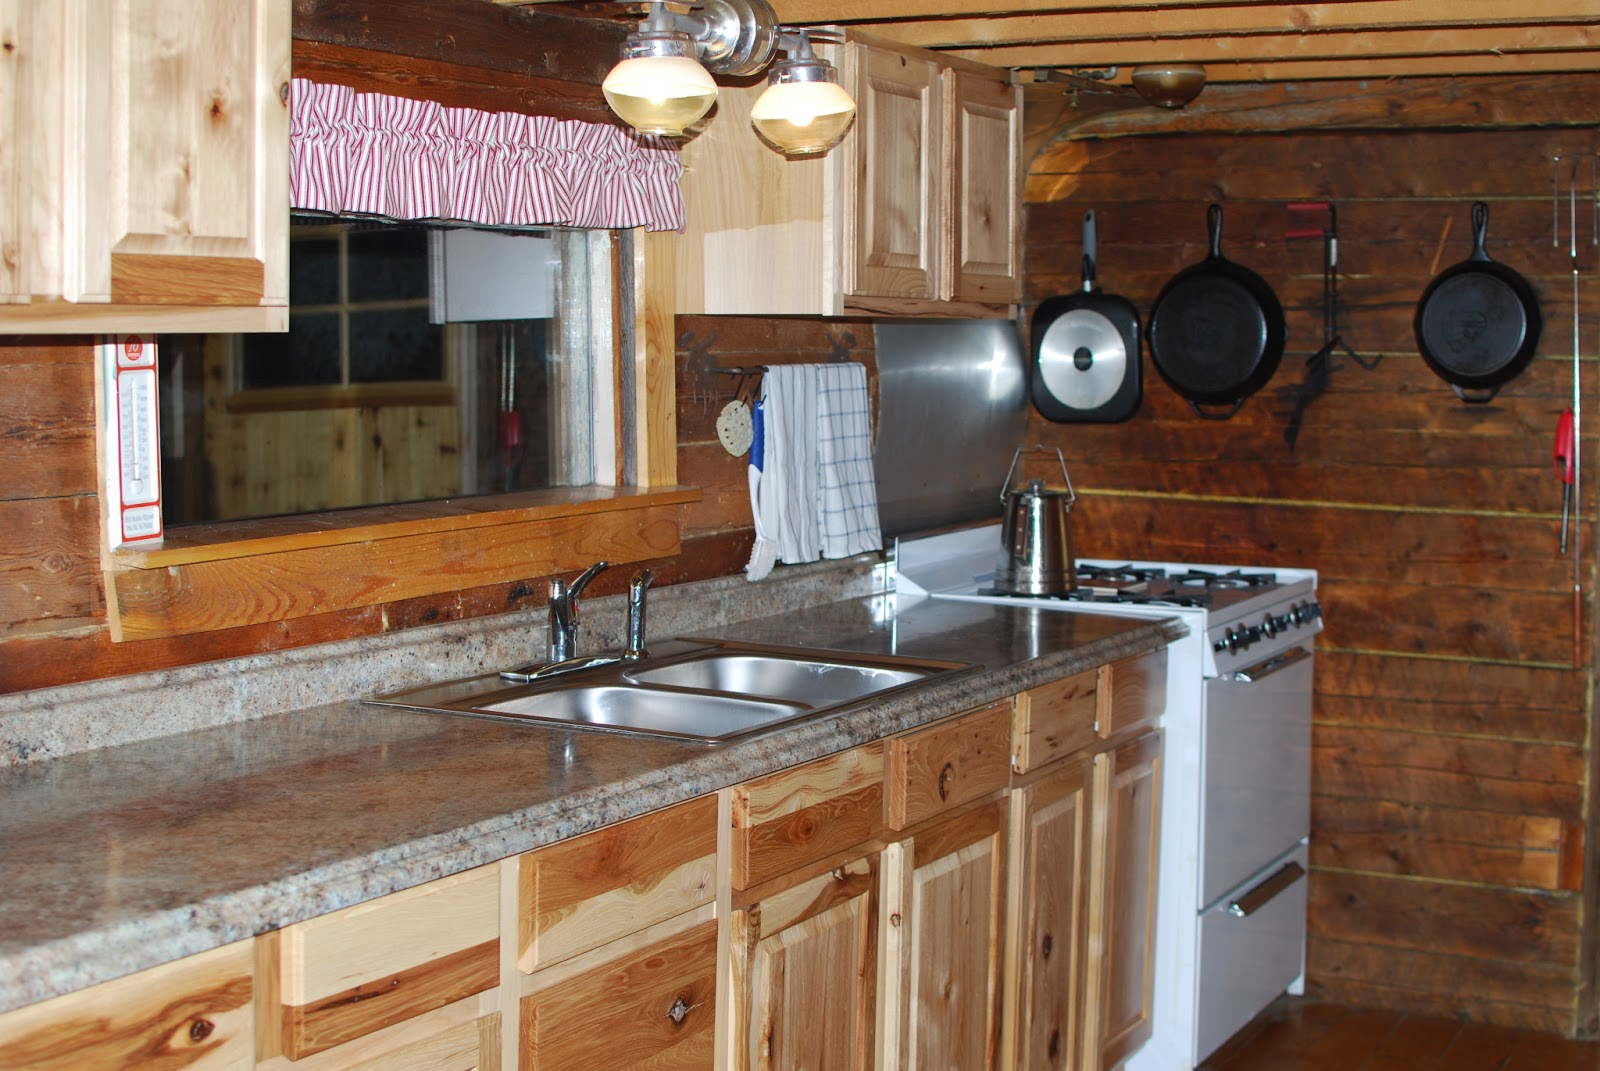 lowes kitchen cabinets sale island lighting lowe s hickory cabin style explore build do